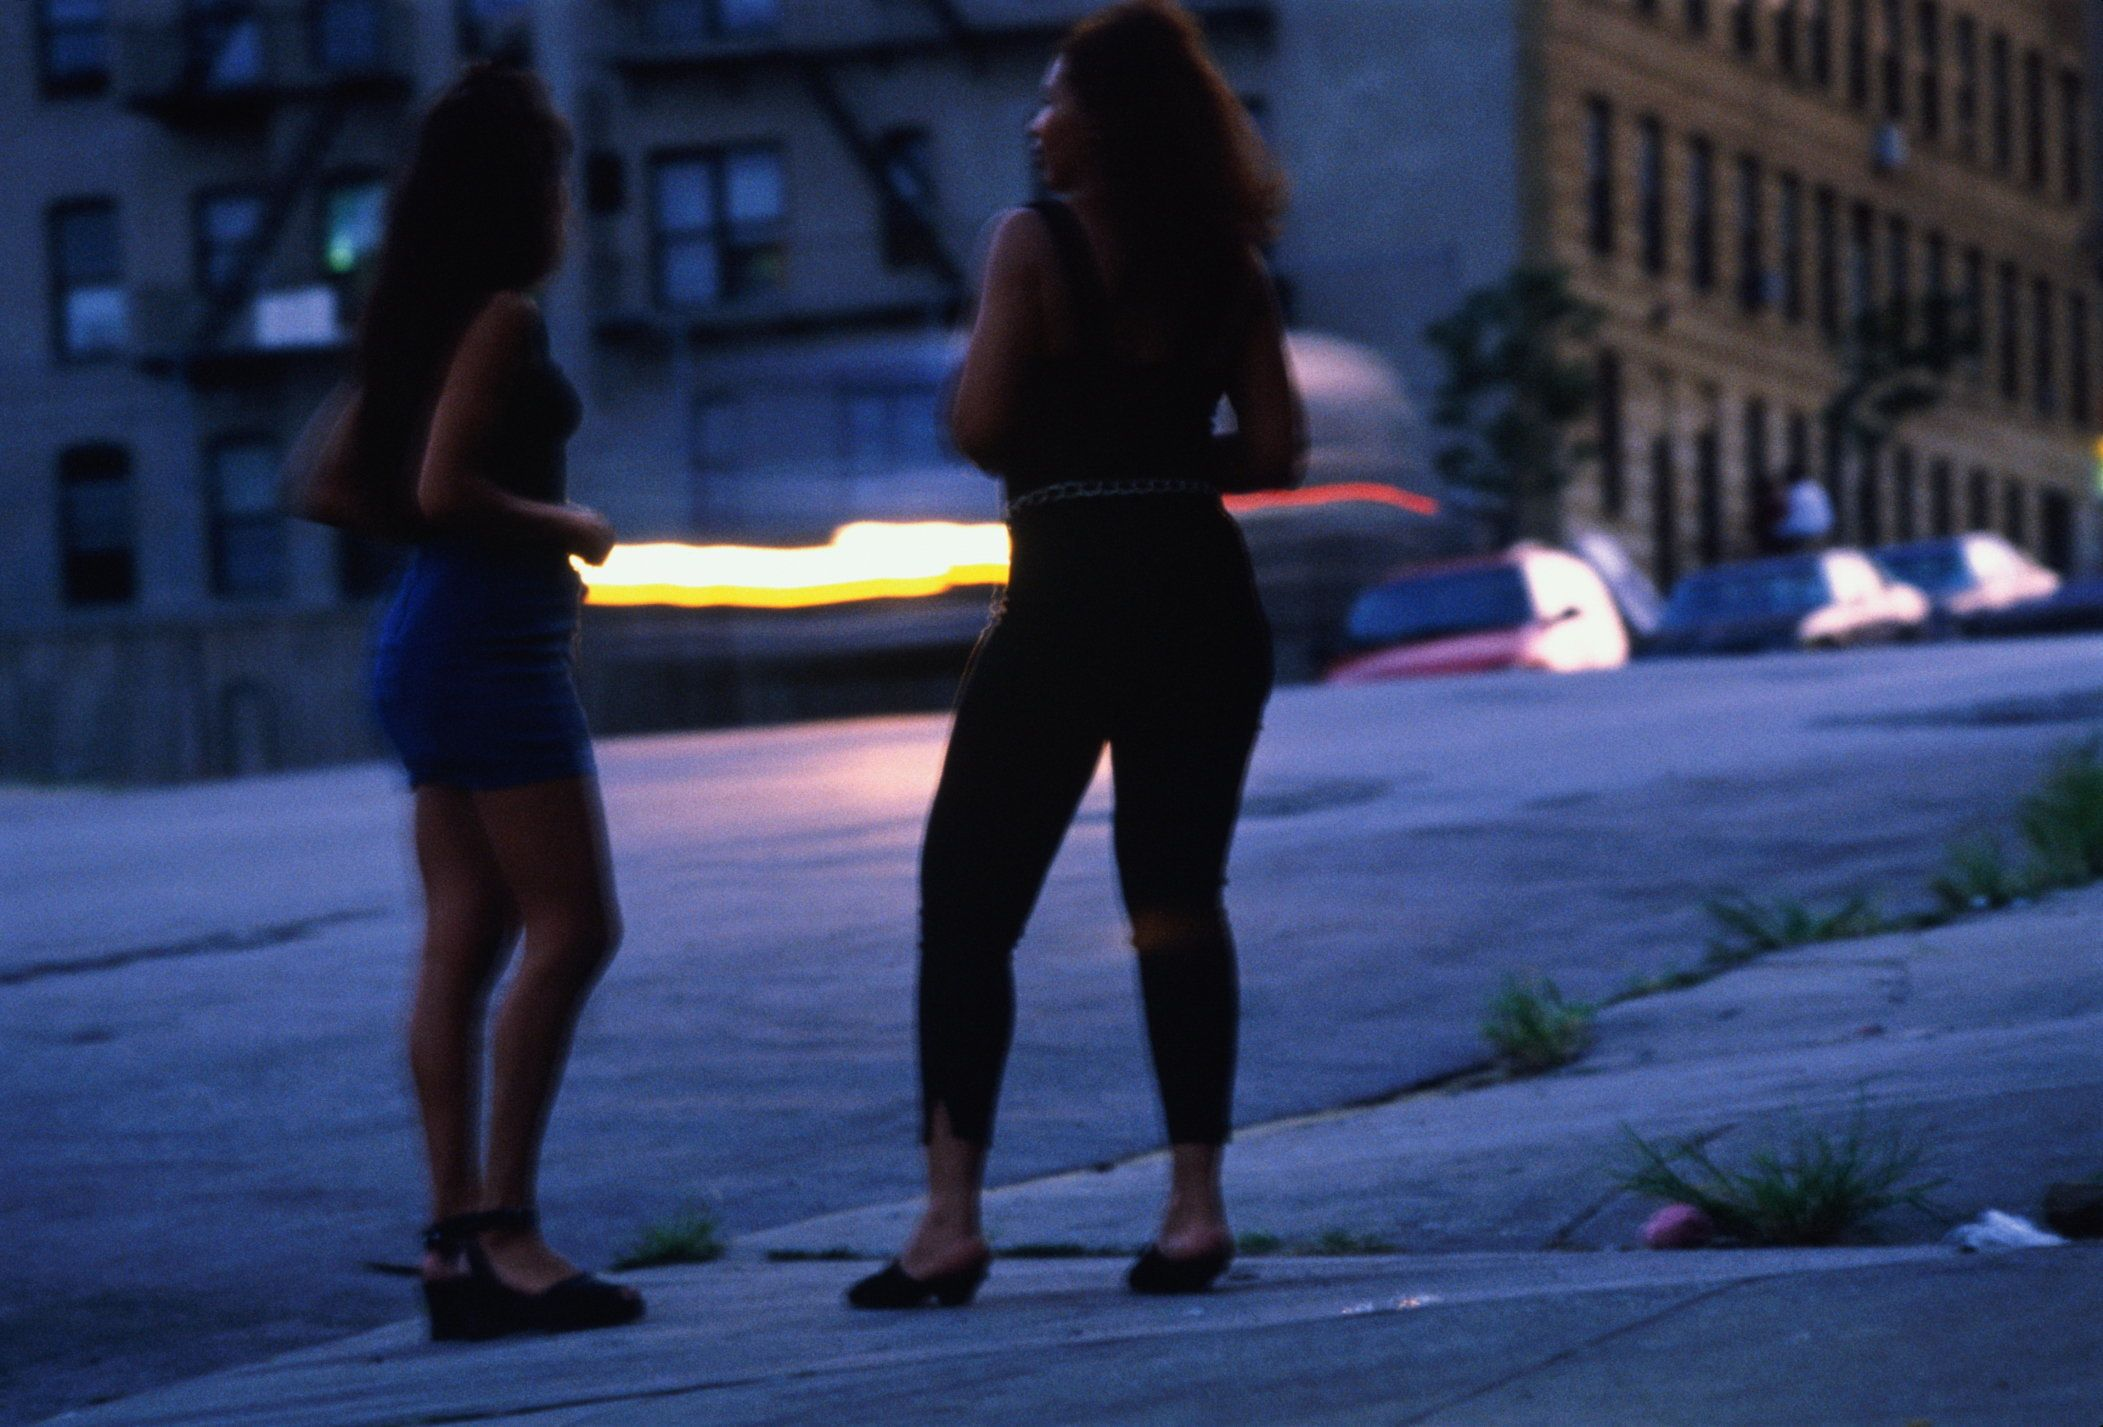 These 'prostitutes' are actually undercover Police women, New York City, USA.